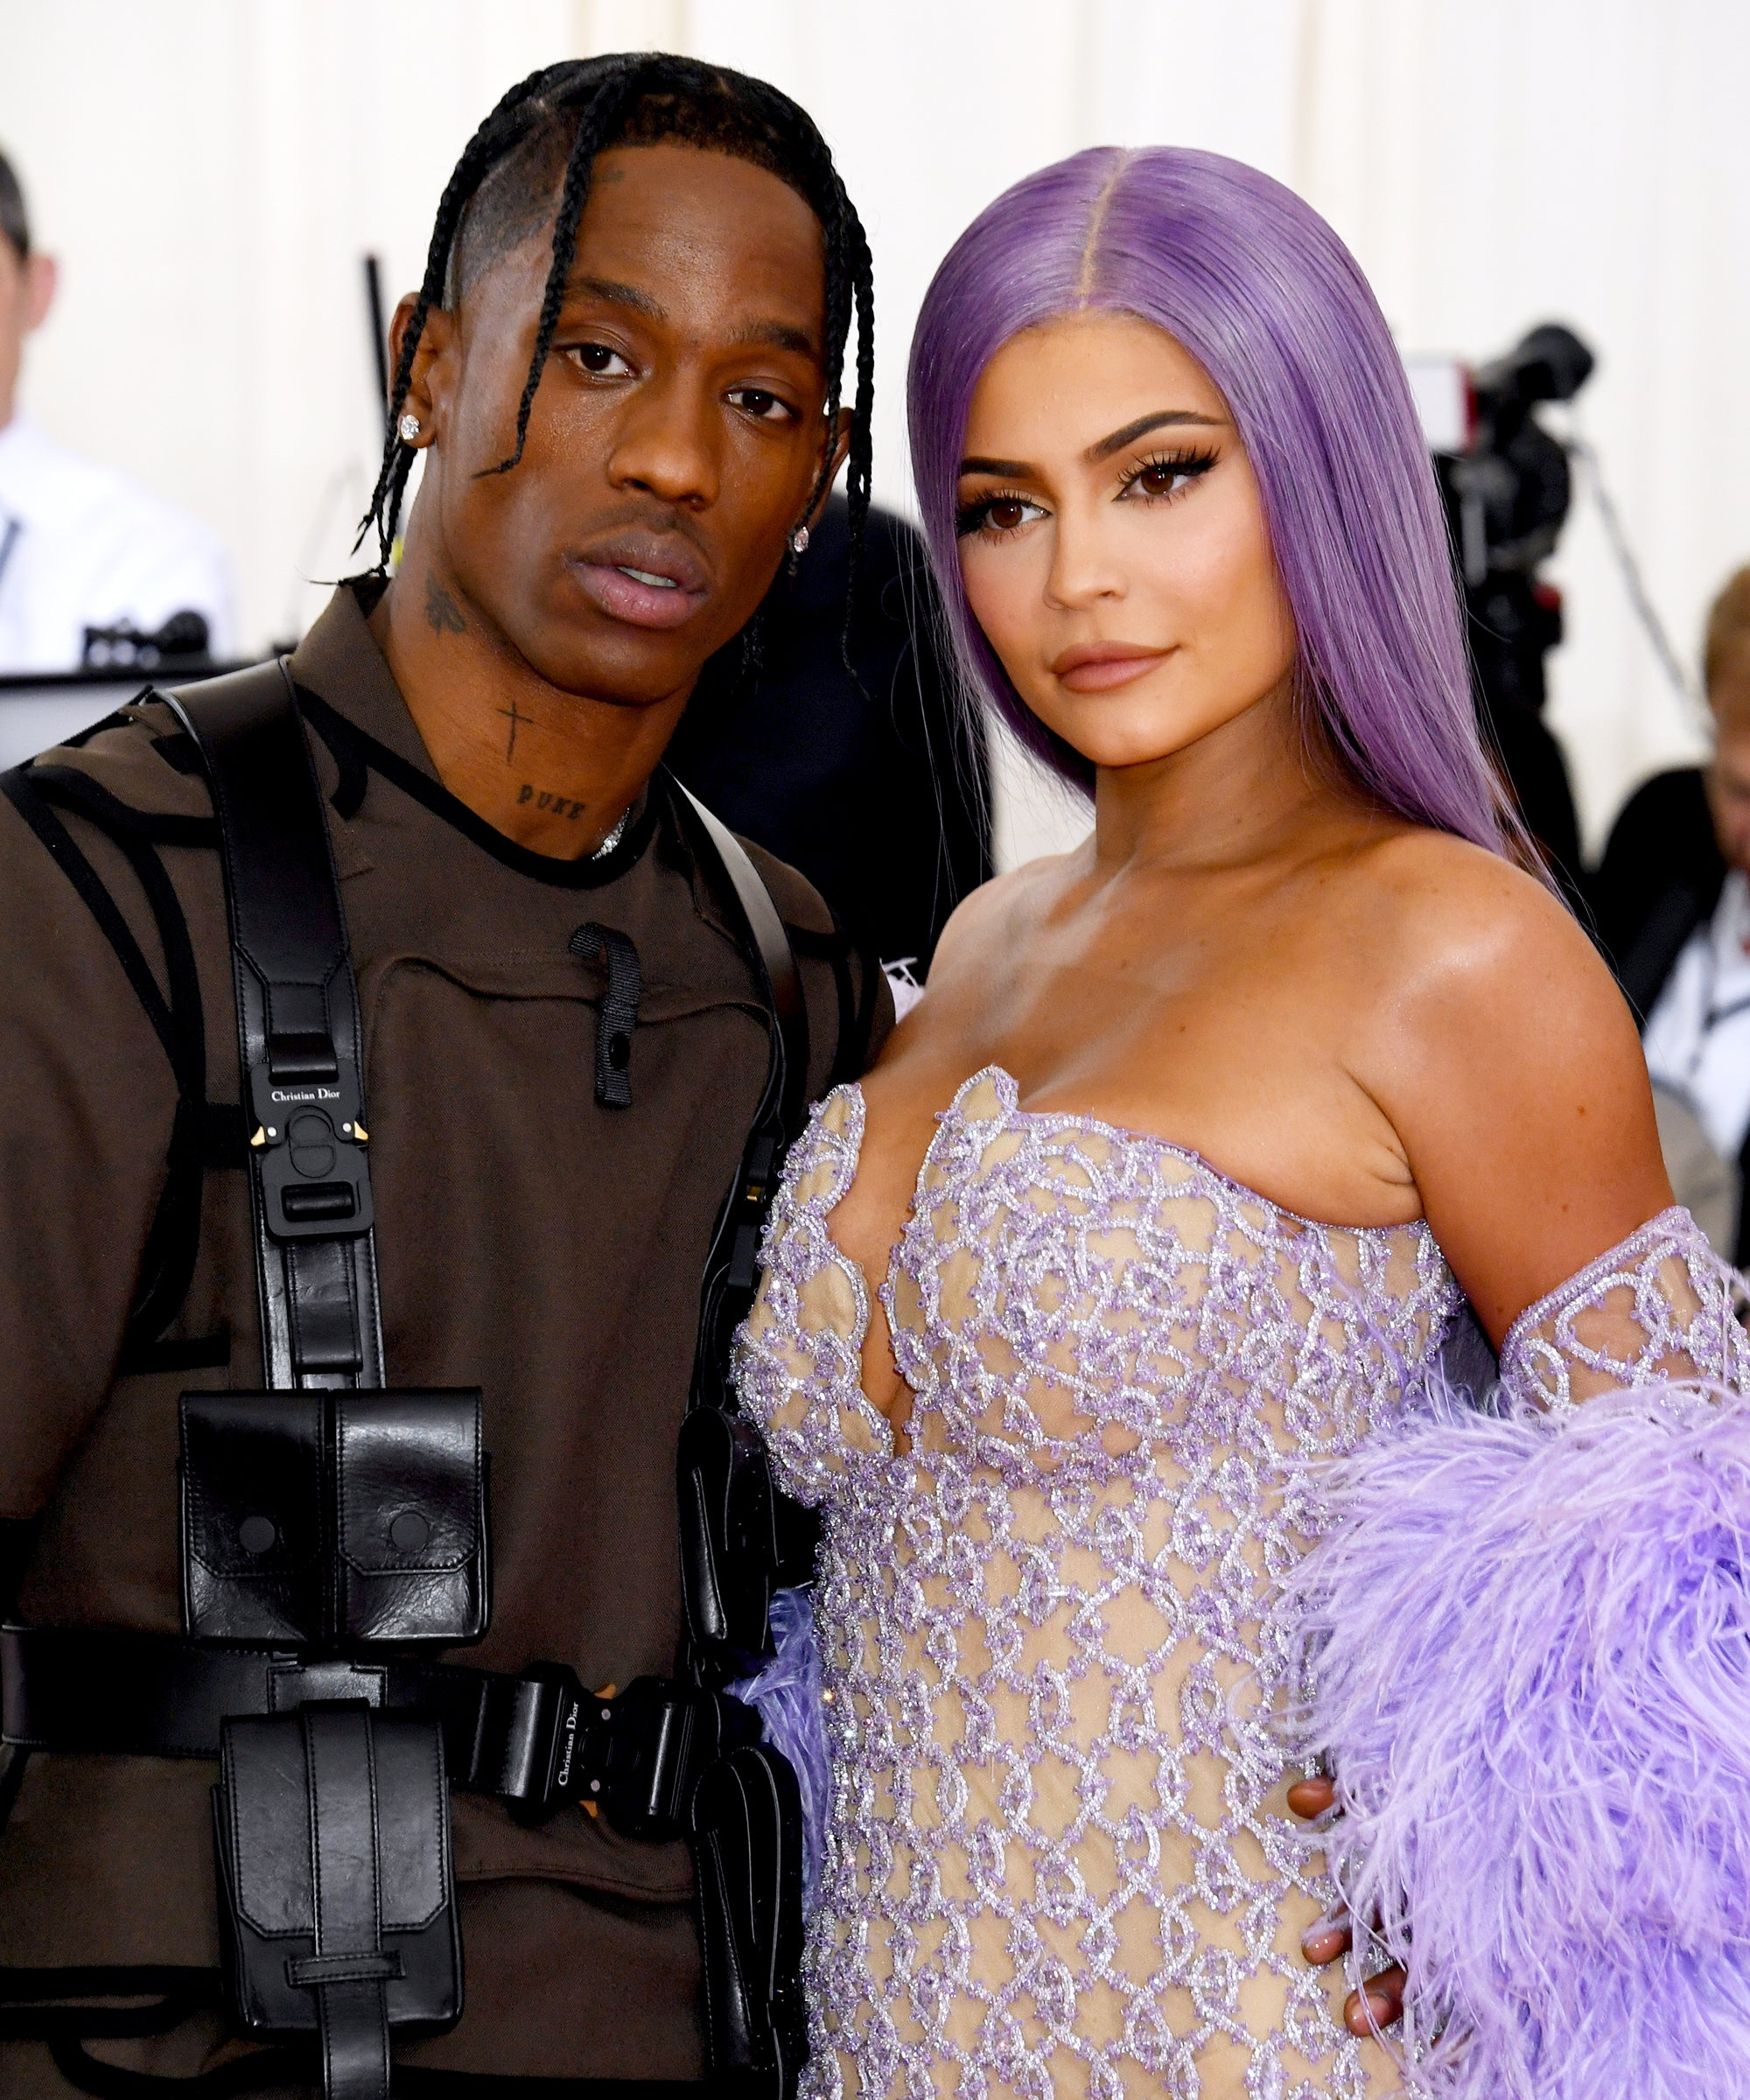 Travis Scott Highest In The Room Kylie Jenner Reference Being born on 30 april 1992, travis scott is 28 years old as of today's date 26th december 2020. travis scott highest in the room kylie